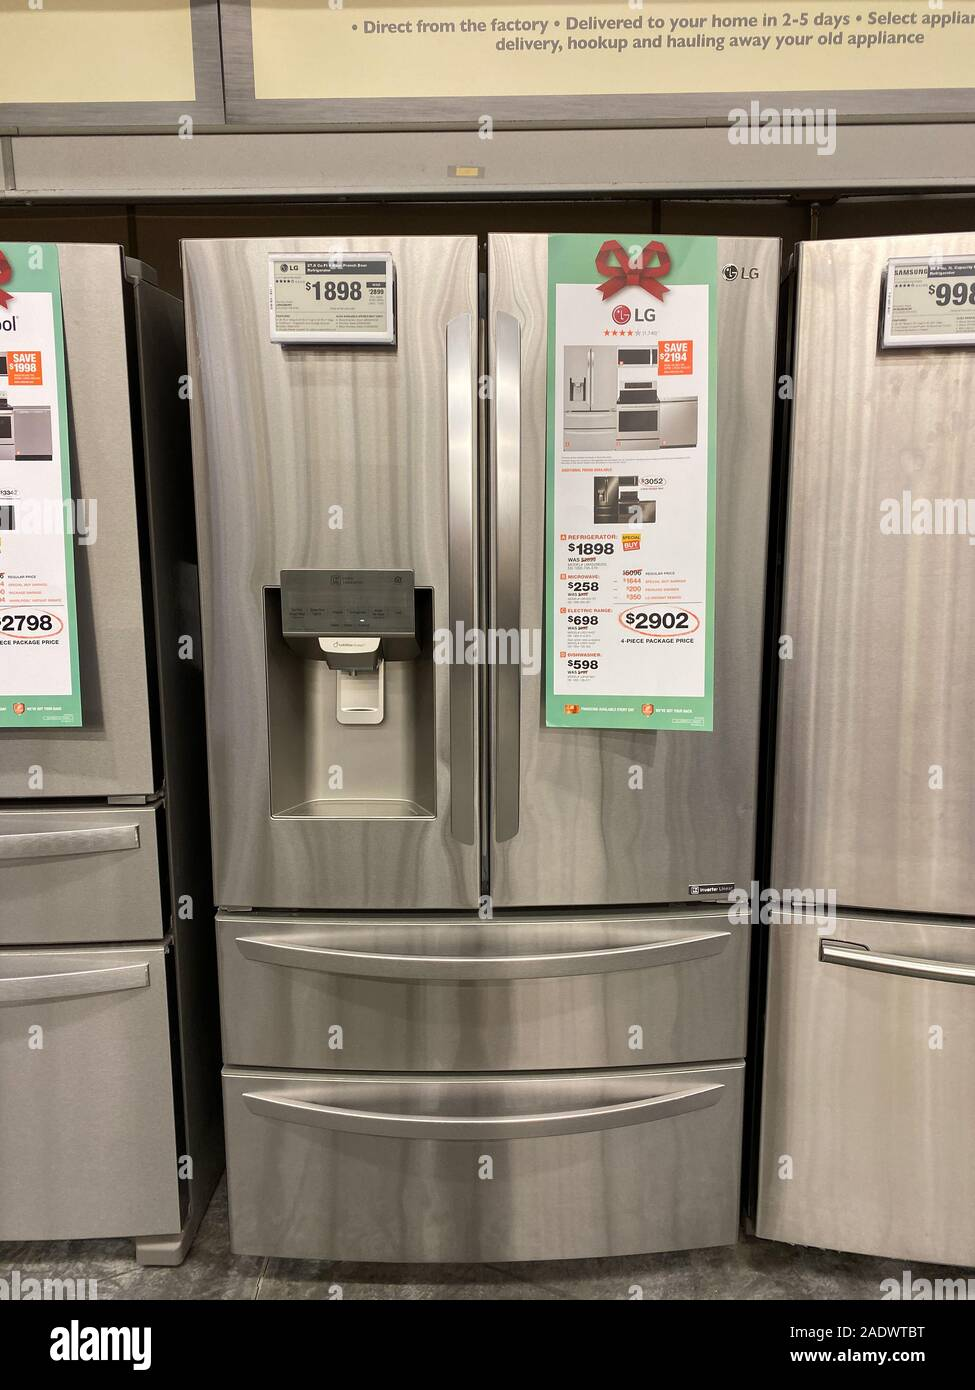 Orlando Fl Usa 11 11 19 A Lg Stainless Steel French Door Refrigerator On Sale At A Home Depot Store Stock Photo Alamy